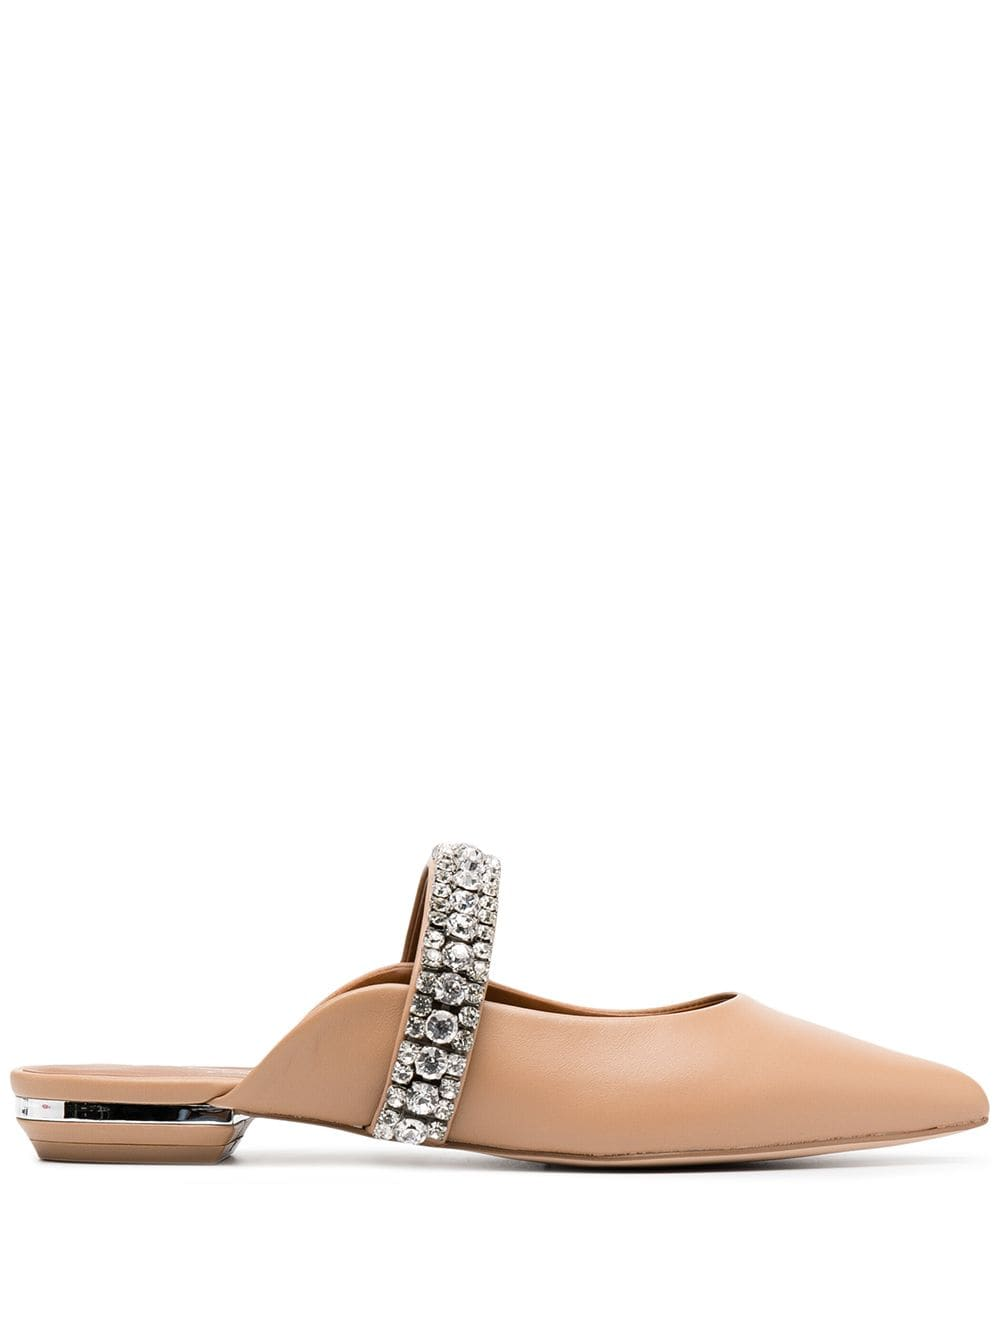 Kurt Geiger London Verzierte Slipper - Nude